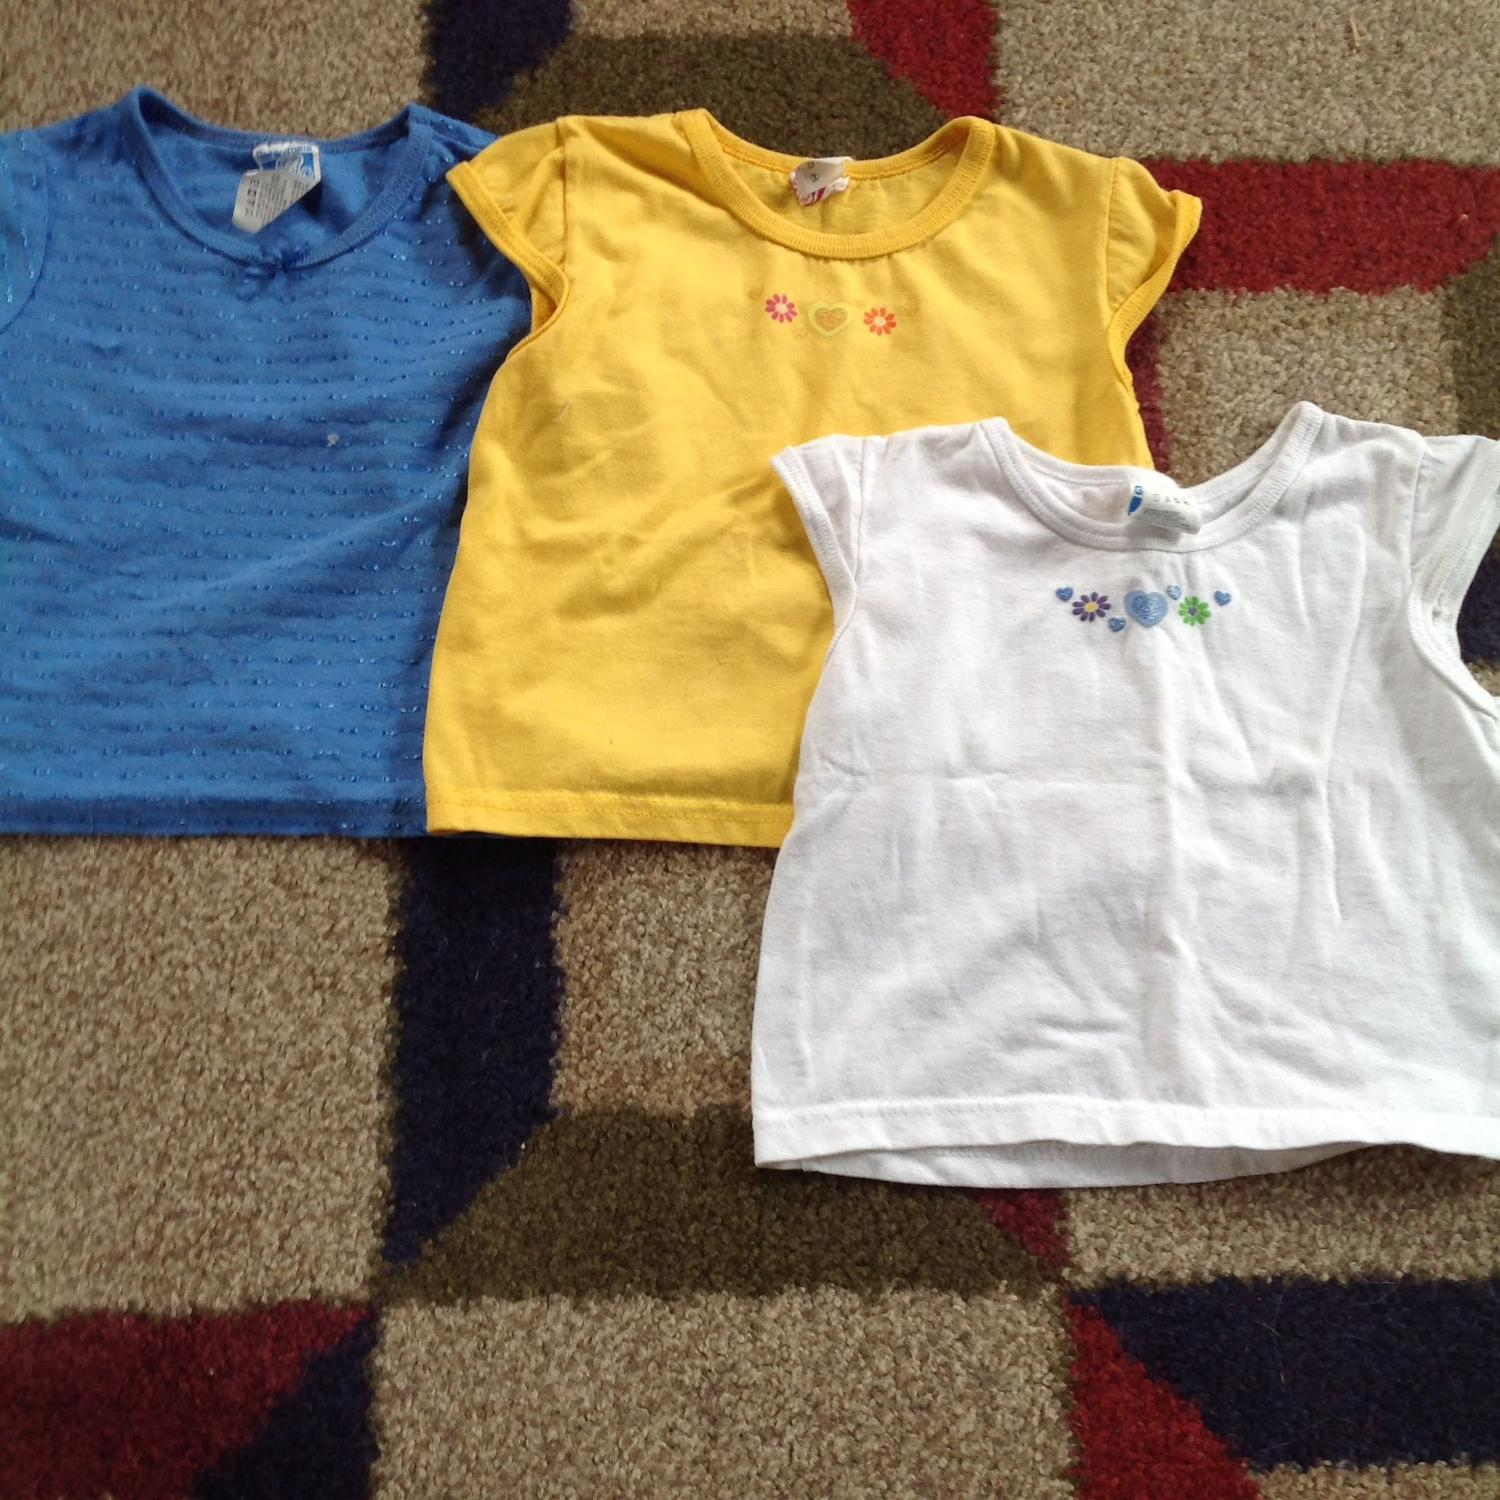 Best 3t Shirt Lot For Sale In Pullman Washington For 2018